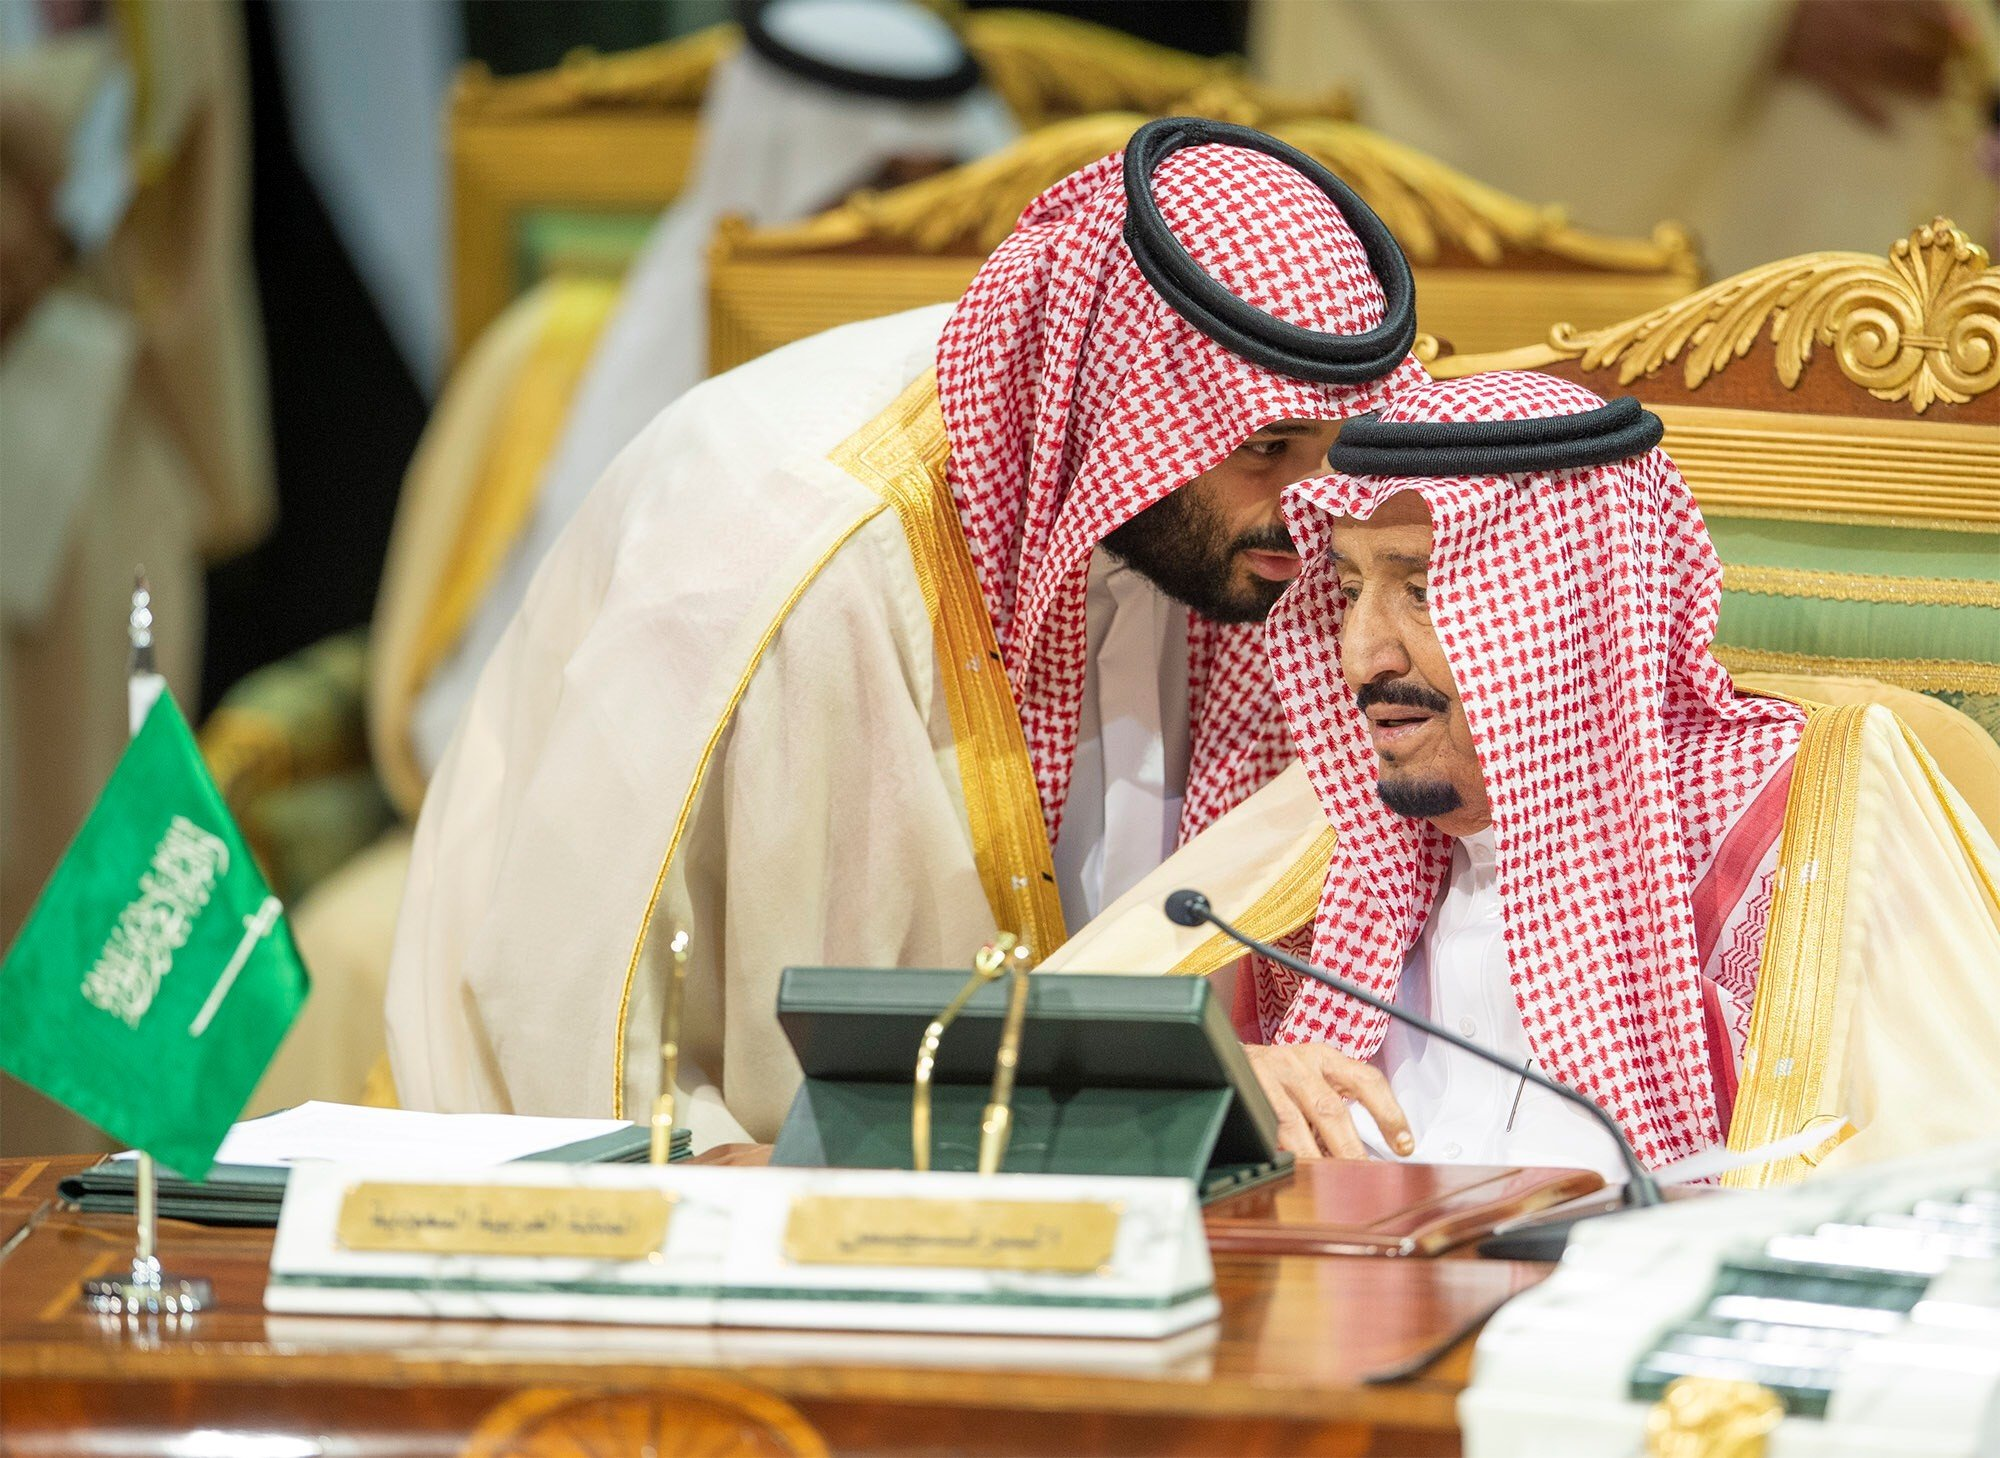 Saudi Arabia's crown prince talks with King Salman during the Gulf Cooperation Council's (GCC) Summit in Riyadh, Saudi Arabia on 9 December 2018 (Reuters)